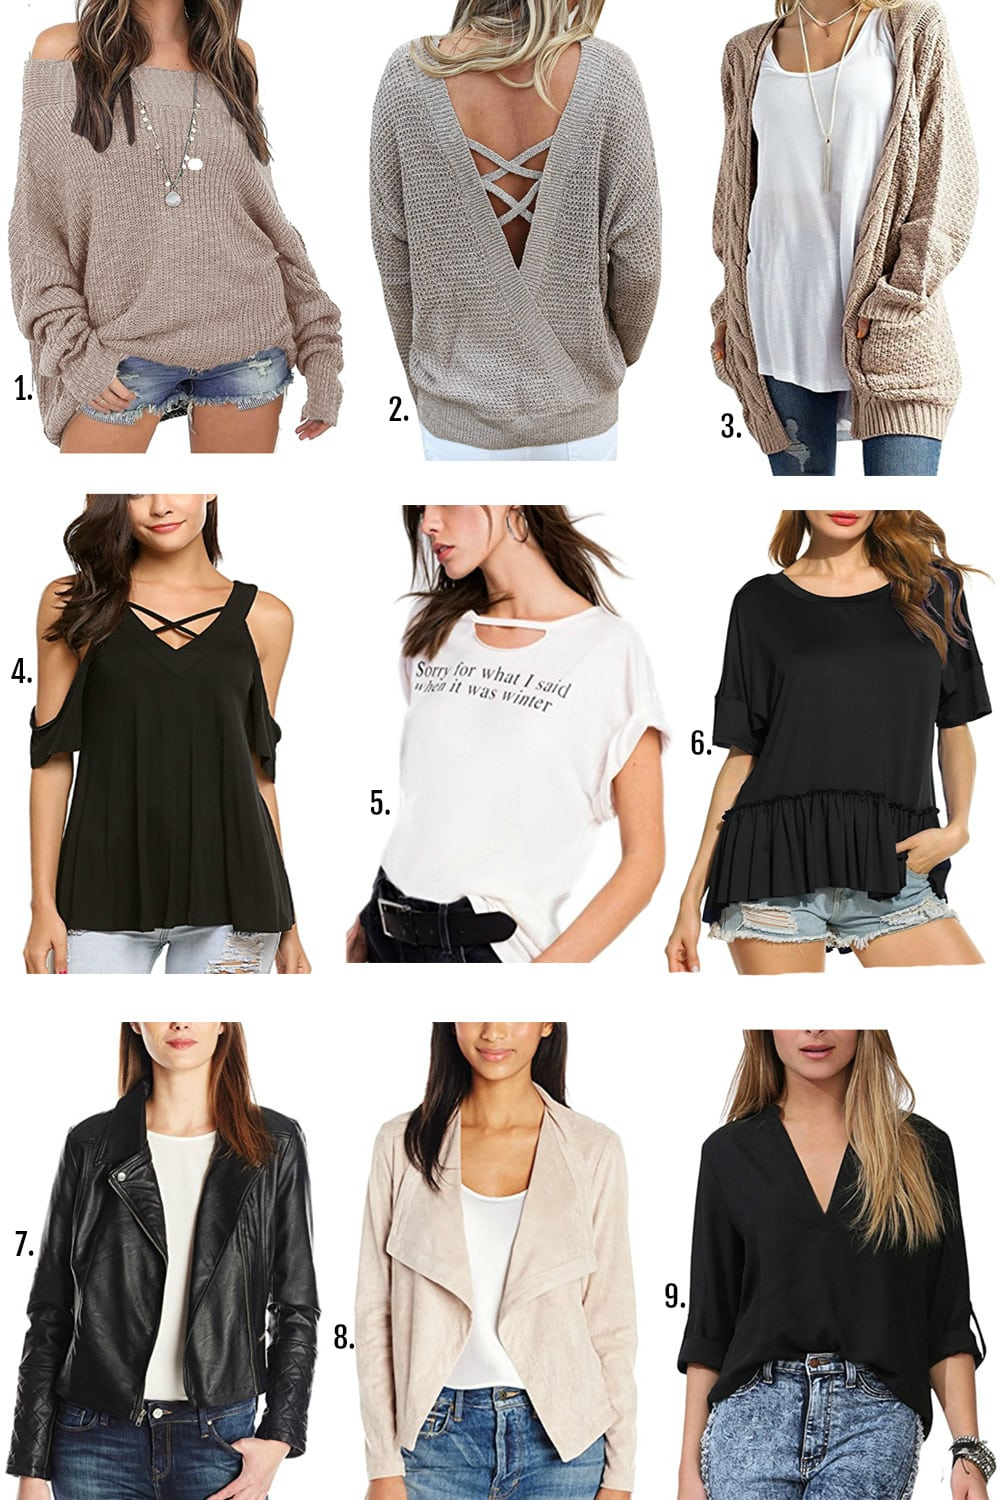 Amazon Fall fashion finds under $100 | Mash Elle fashion blogger | Gucci designer bag dupe | Chloe designer bag dupe | over the knee boots | affordable style for women | flattering trench coat | skinny ripped jeans for less | clothing for curvy girls | designer fashion dupe  | chanel bag dupe